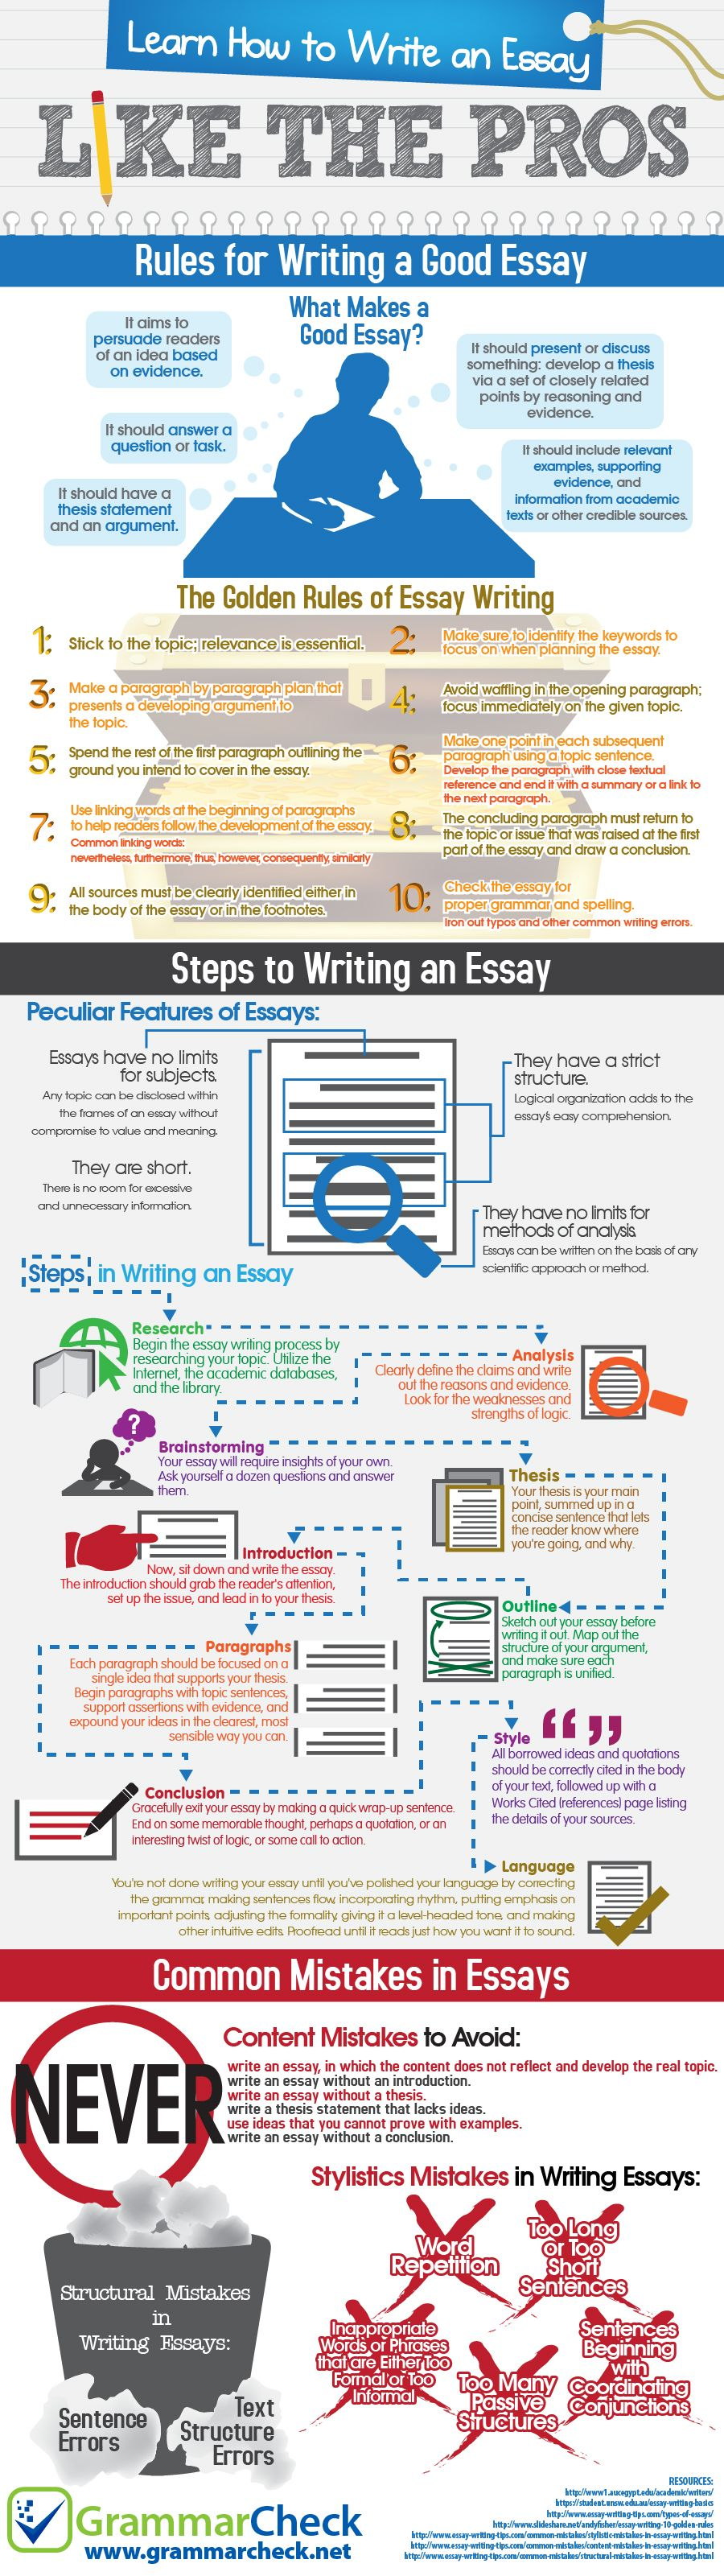 how to write an essay like the pros infographic about writing how to write an essay like the pros infographic need help writing your paper for college or school these essay tips are amazing